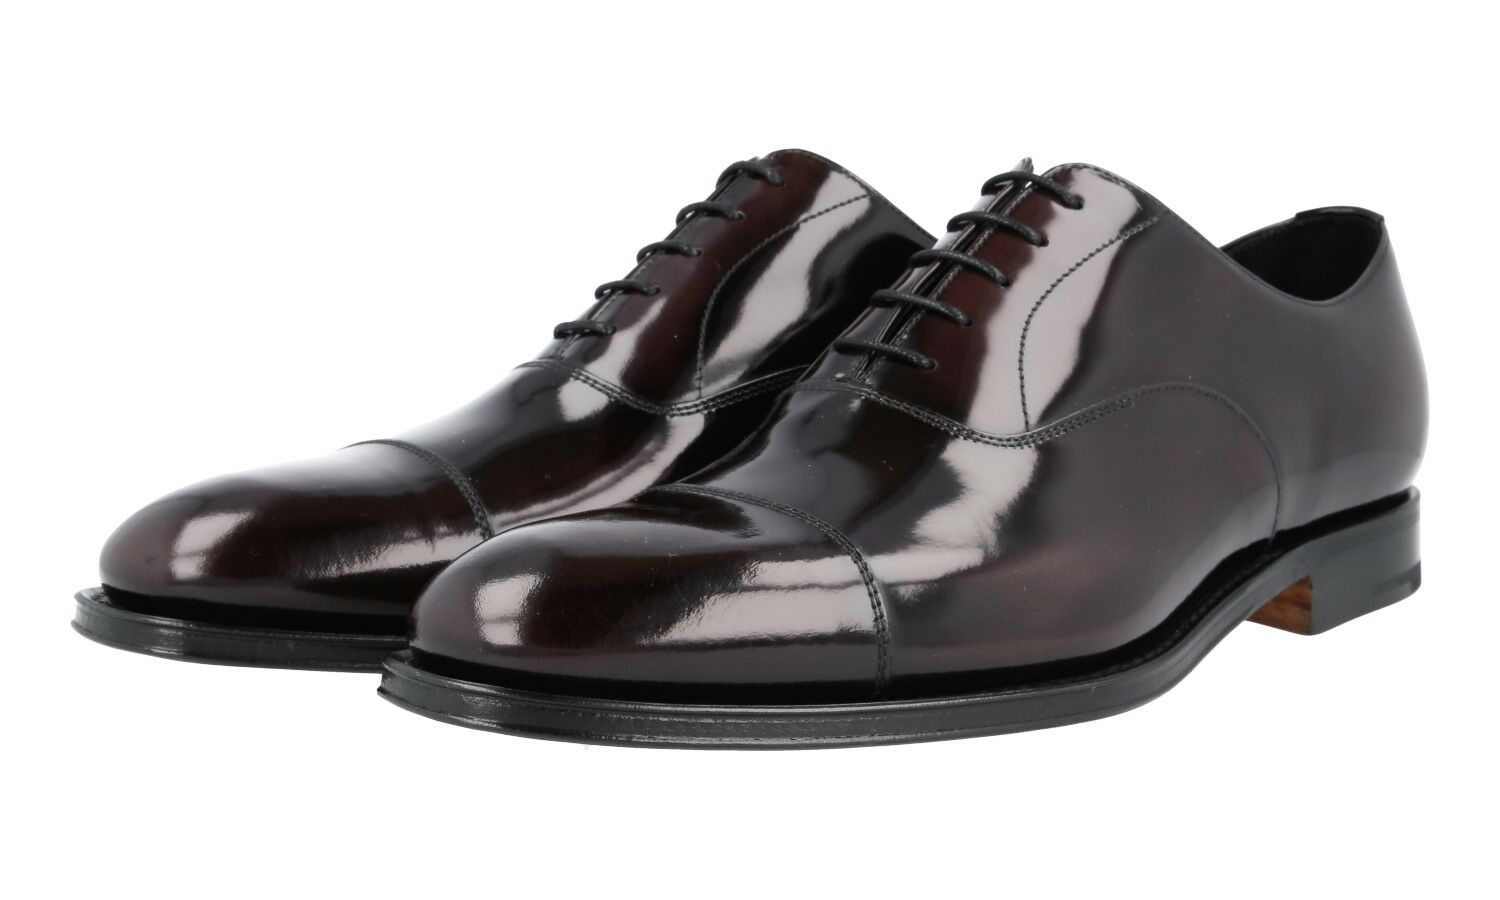 AUTH LUXURY PRADA CAP TOE TOE TOE OXFORD SHOES 2EB129 CORDOVAN NEW US 8.5 EU 41,5 42 24ff8c